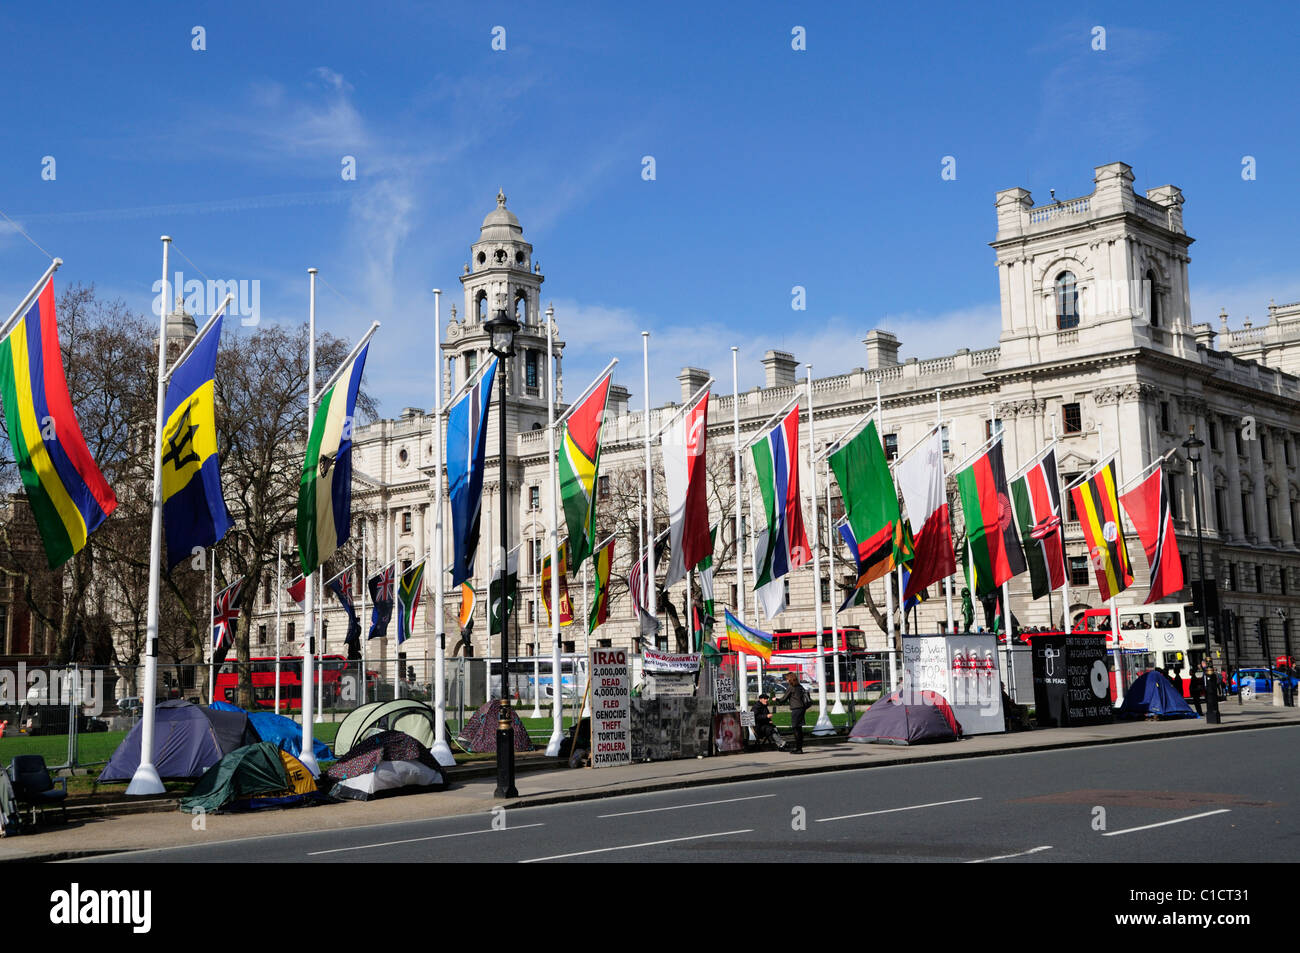 Parliament Square with Anti War Protestors and Flags, Westminster, London, England, UK - Stock Image